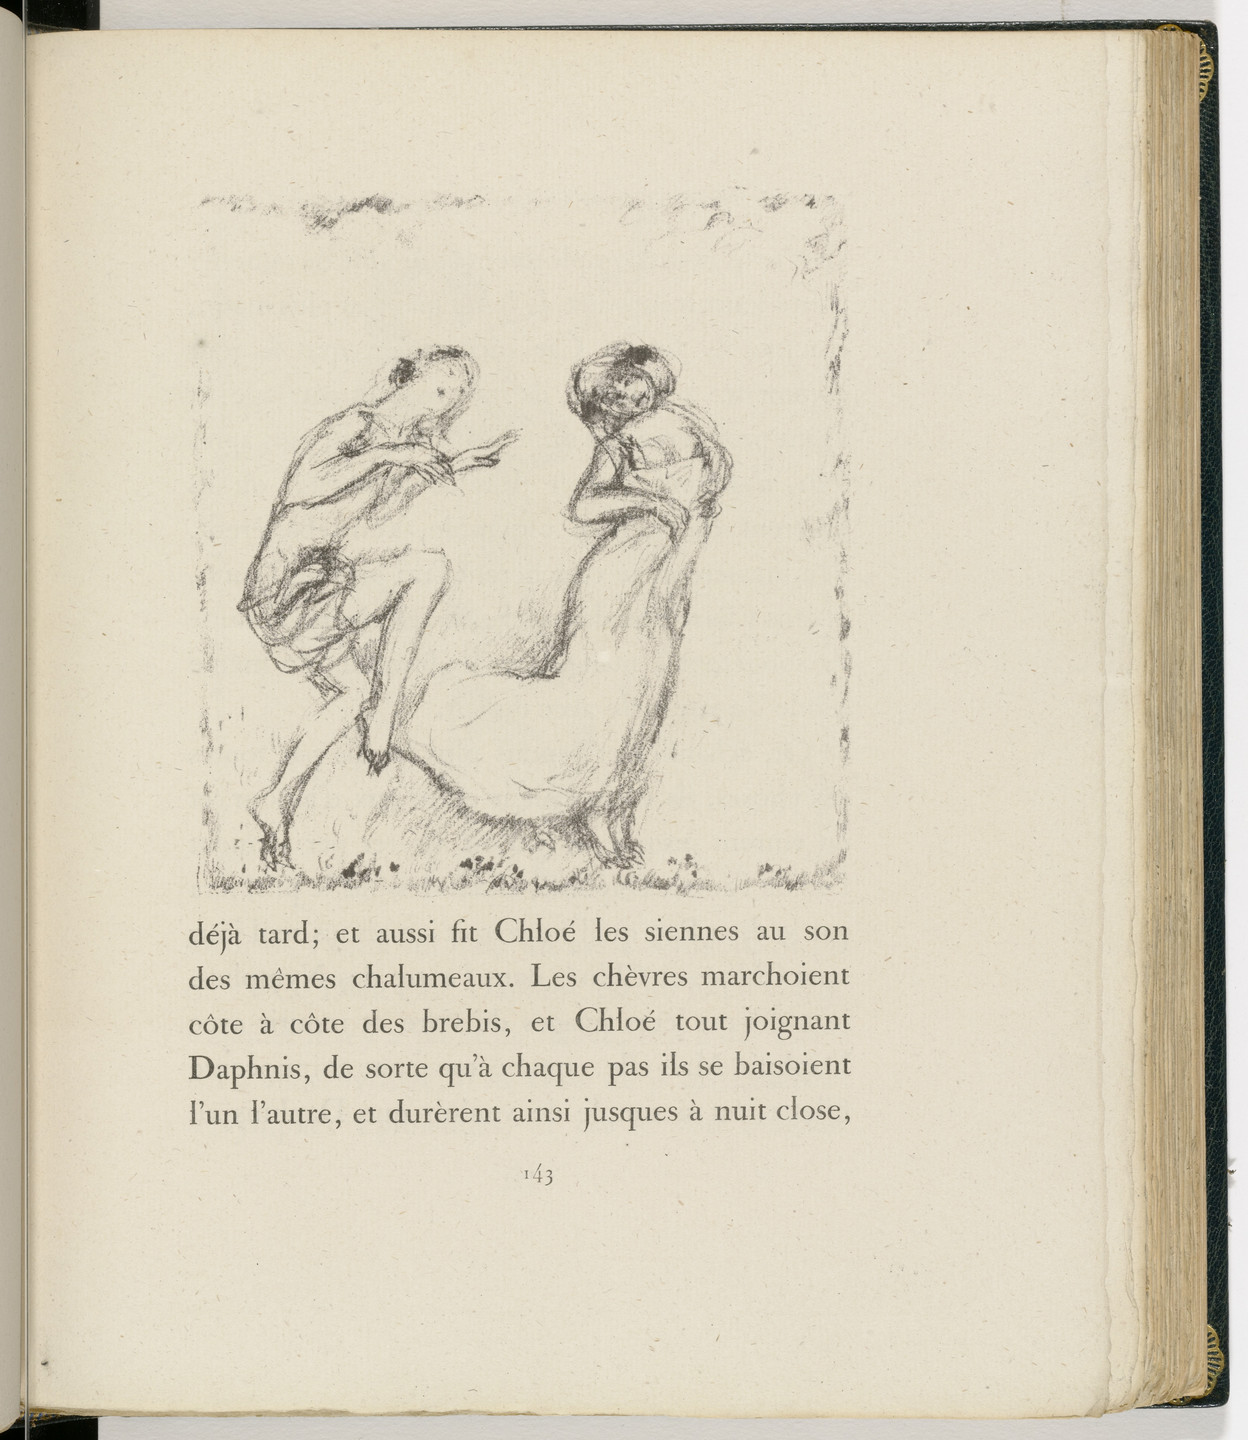 Pierre Bonnard. In-text plate (page 143) from Daphnis et Chloé. 1902